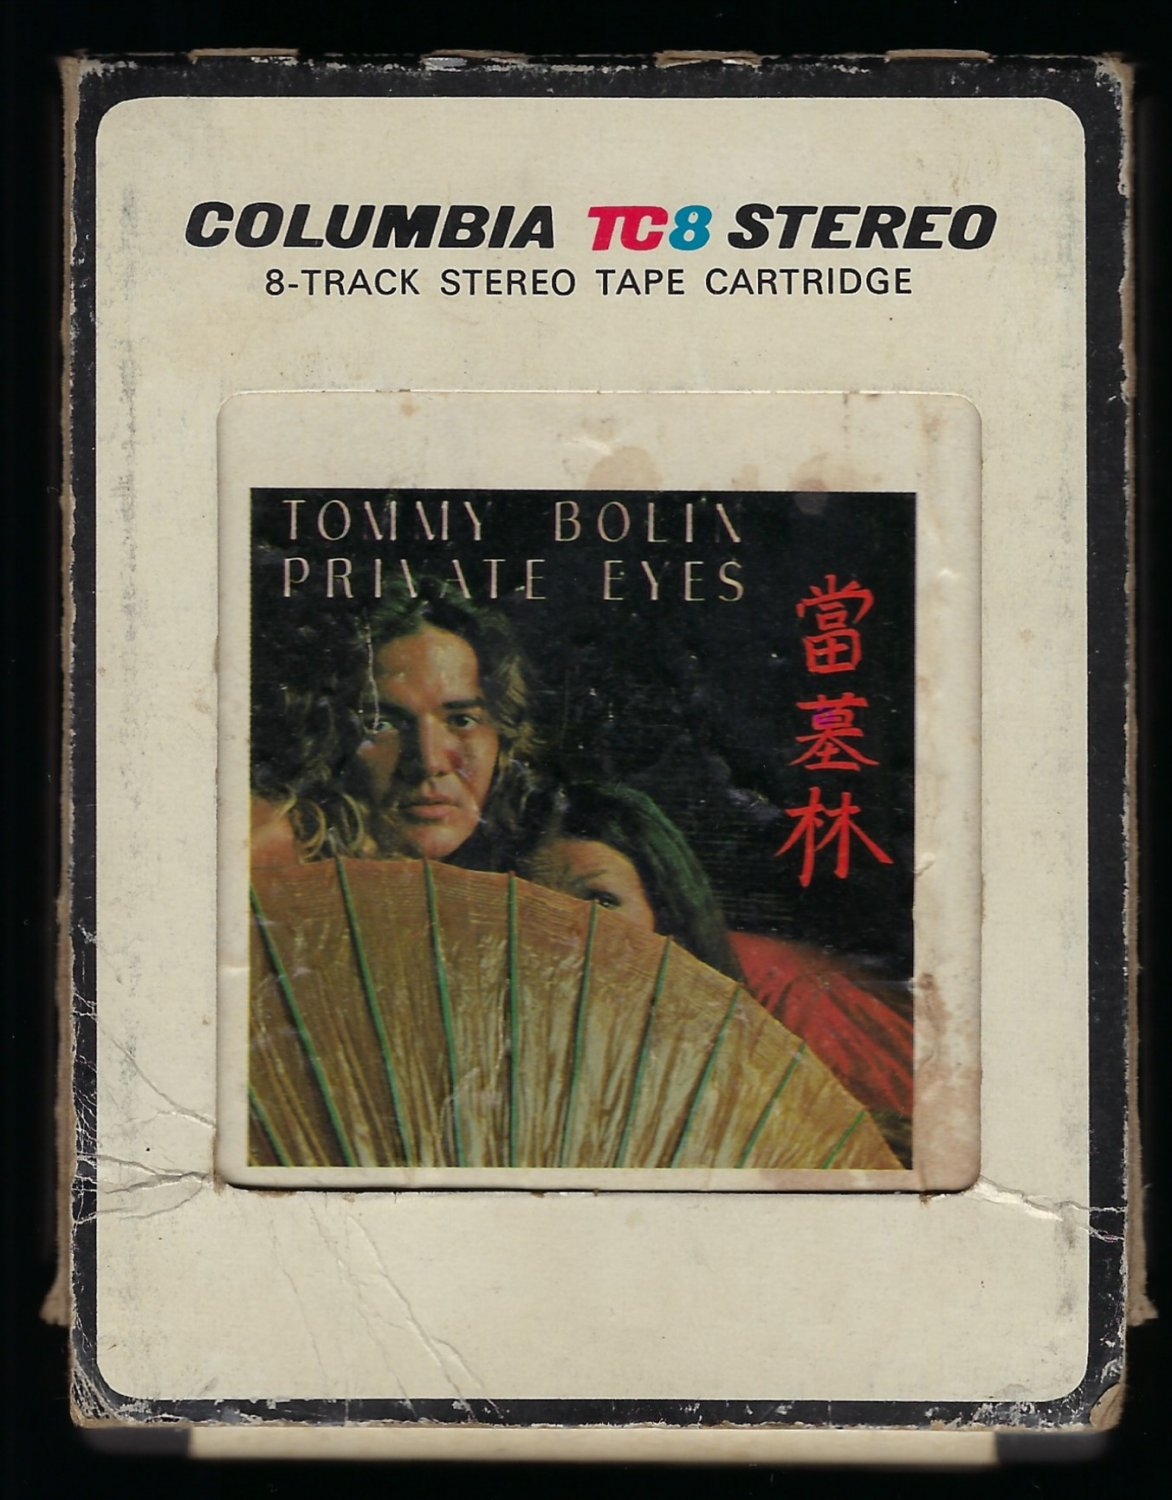 Tommy Bolin - Private Eyes 1976 CBS T9 8-TRACK TAPE